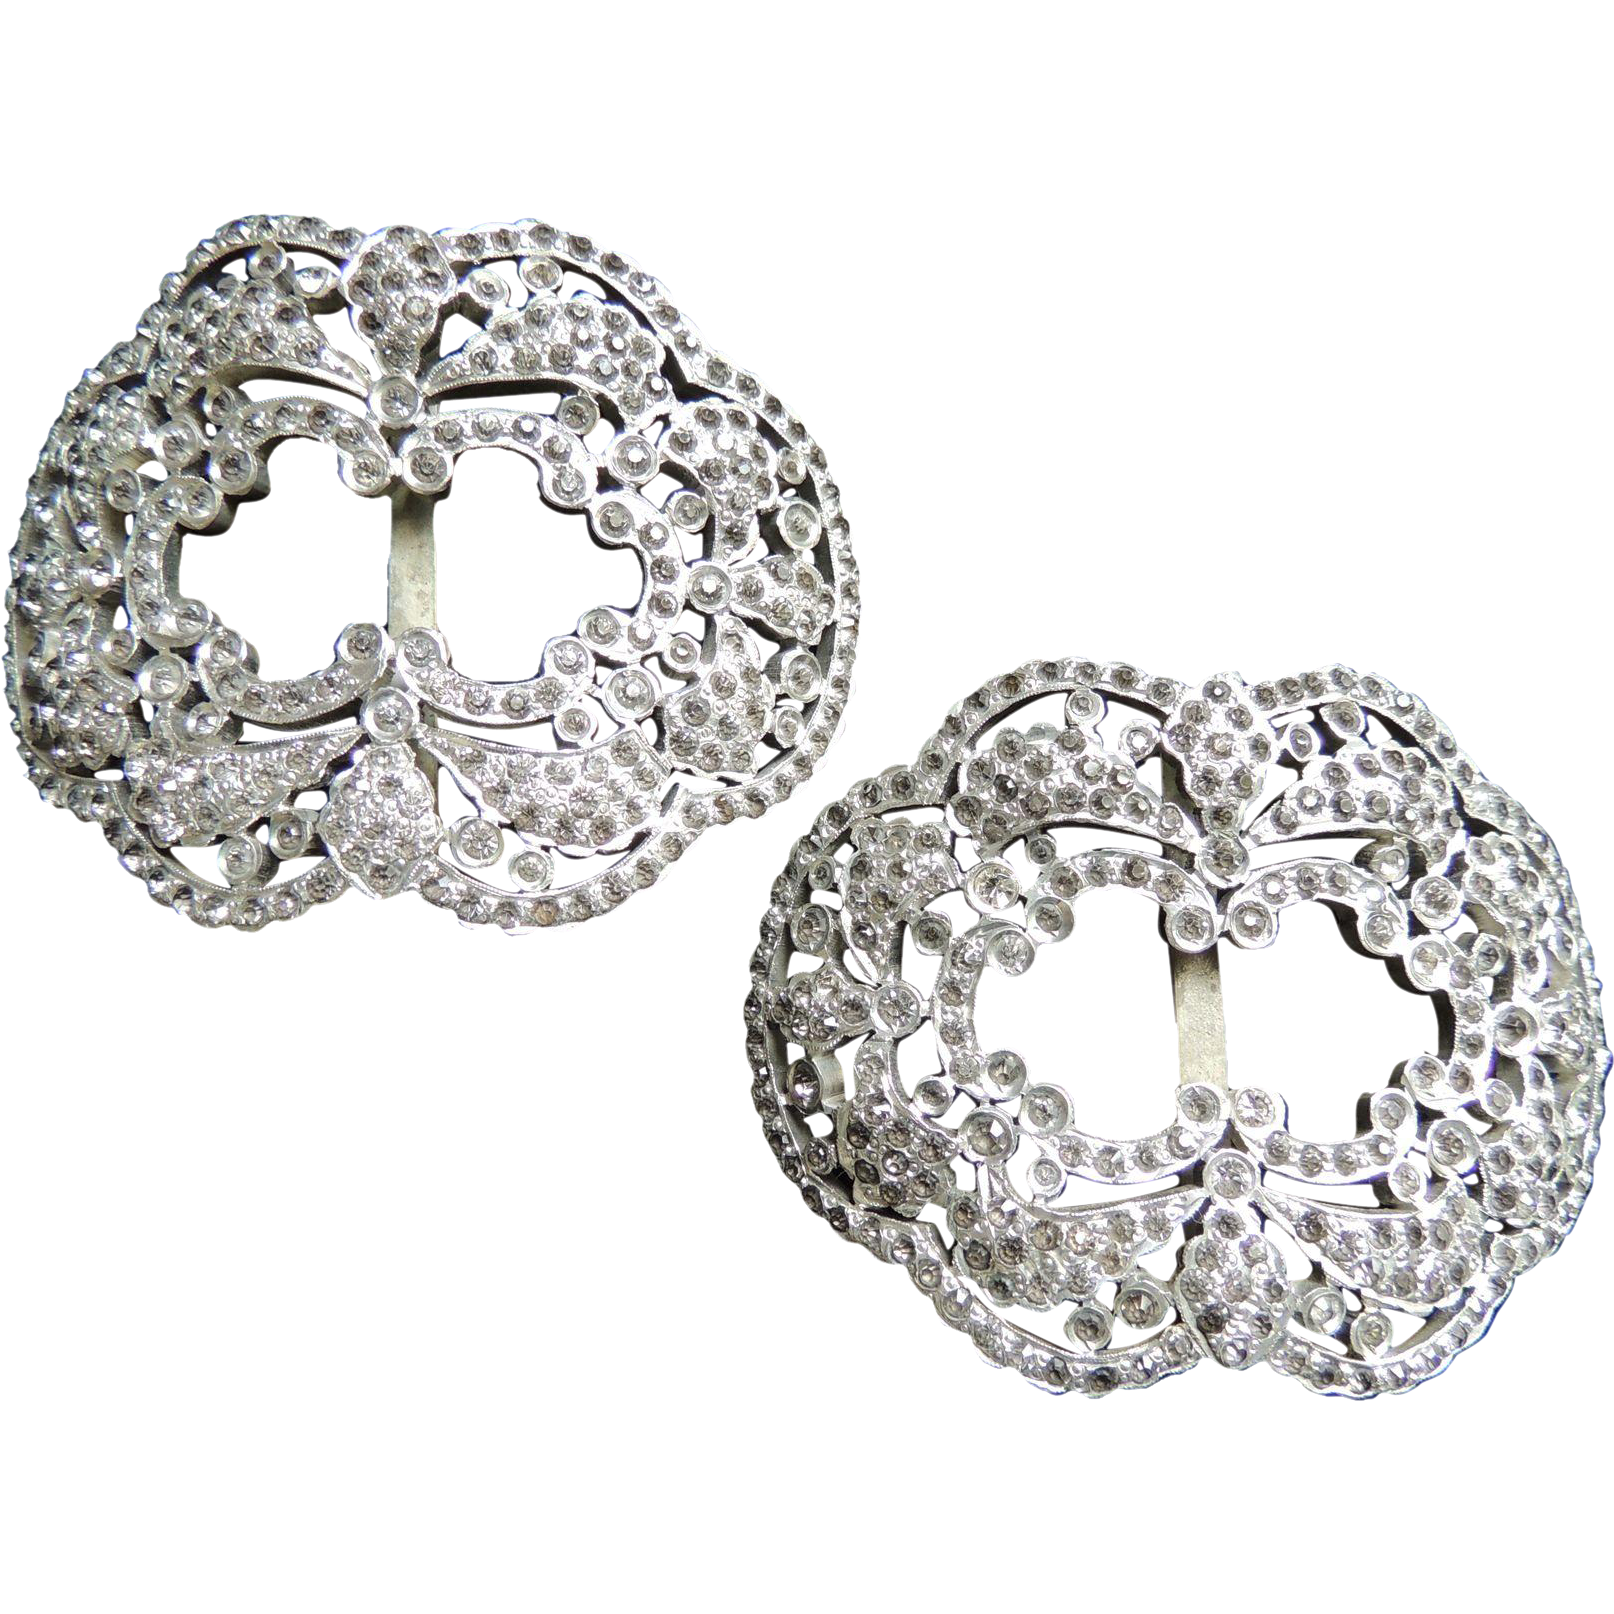 18th century shoe buckles